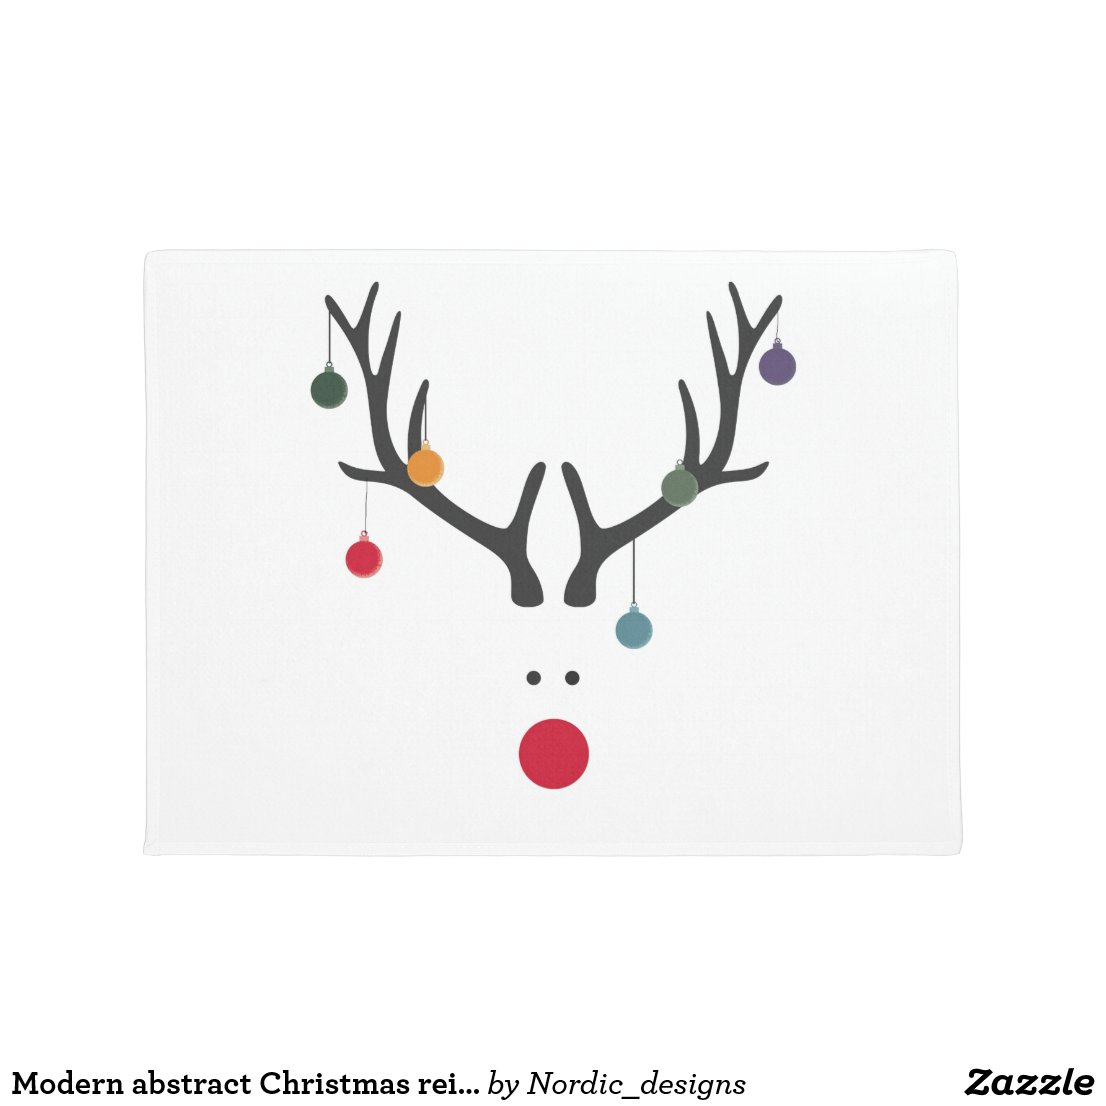 Modern abstract Christmas reindeer with baubles